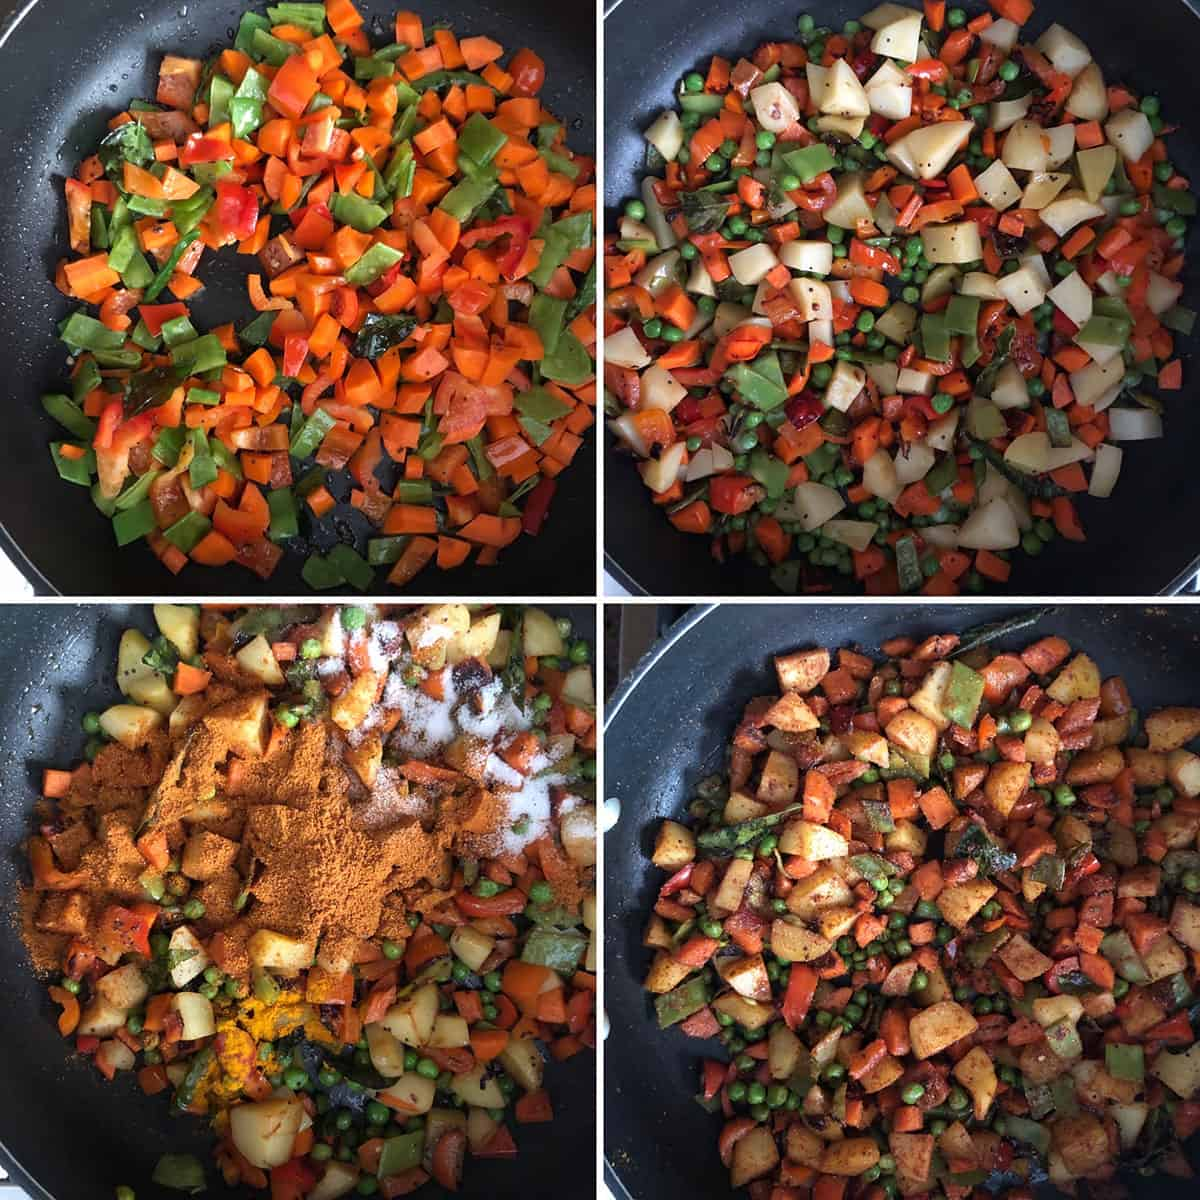 Side by side photos showing the making of the spicy vegetable mixture